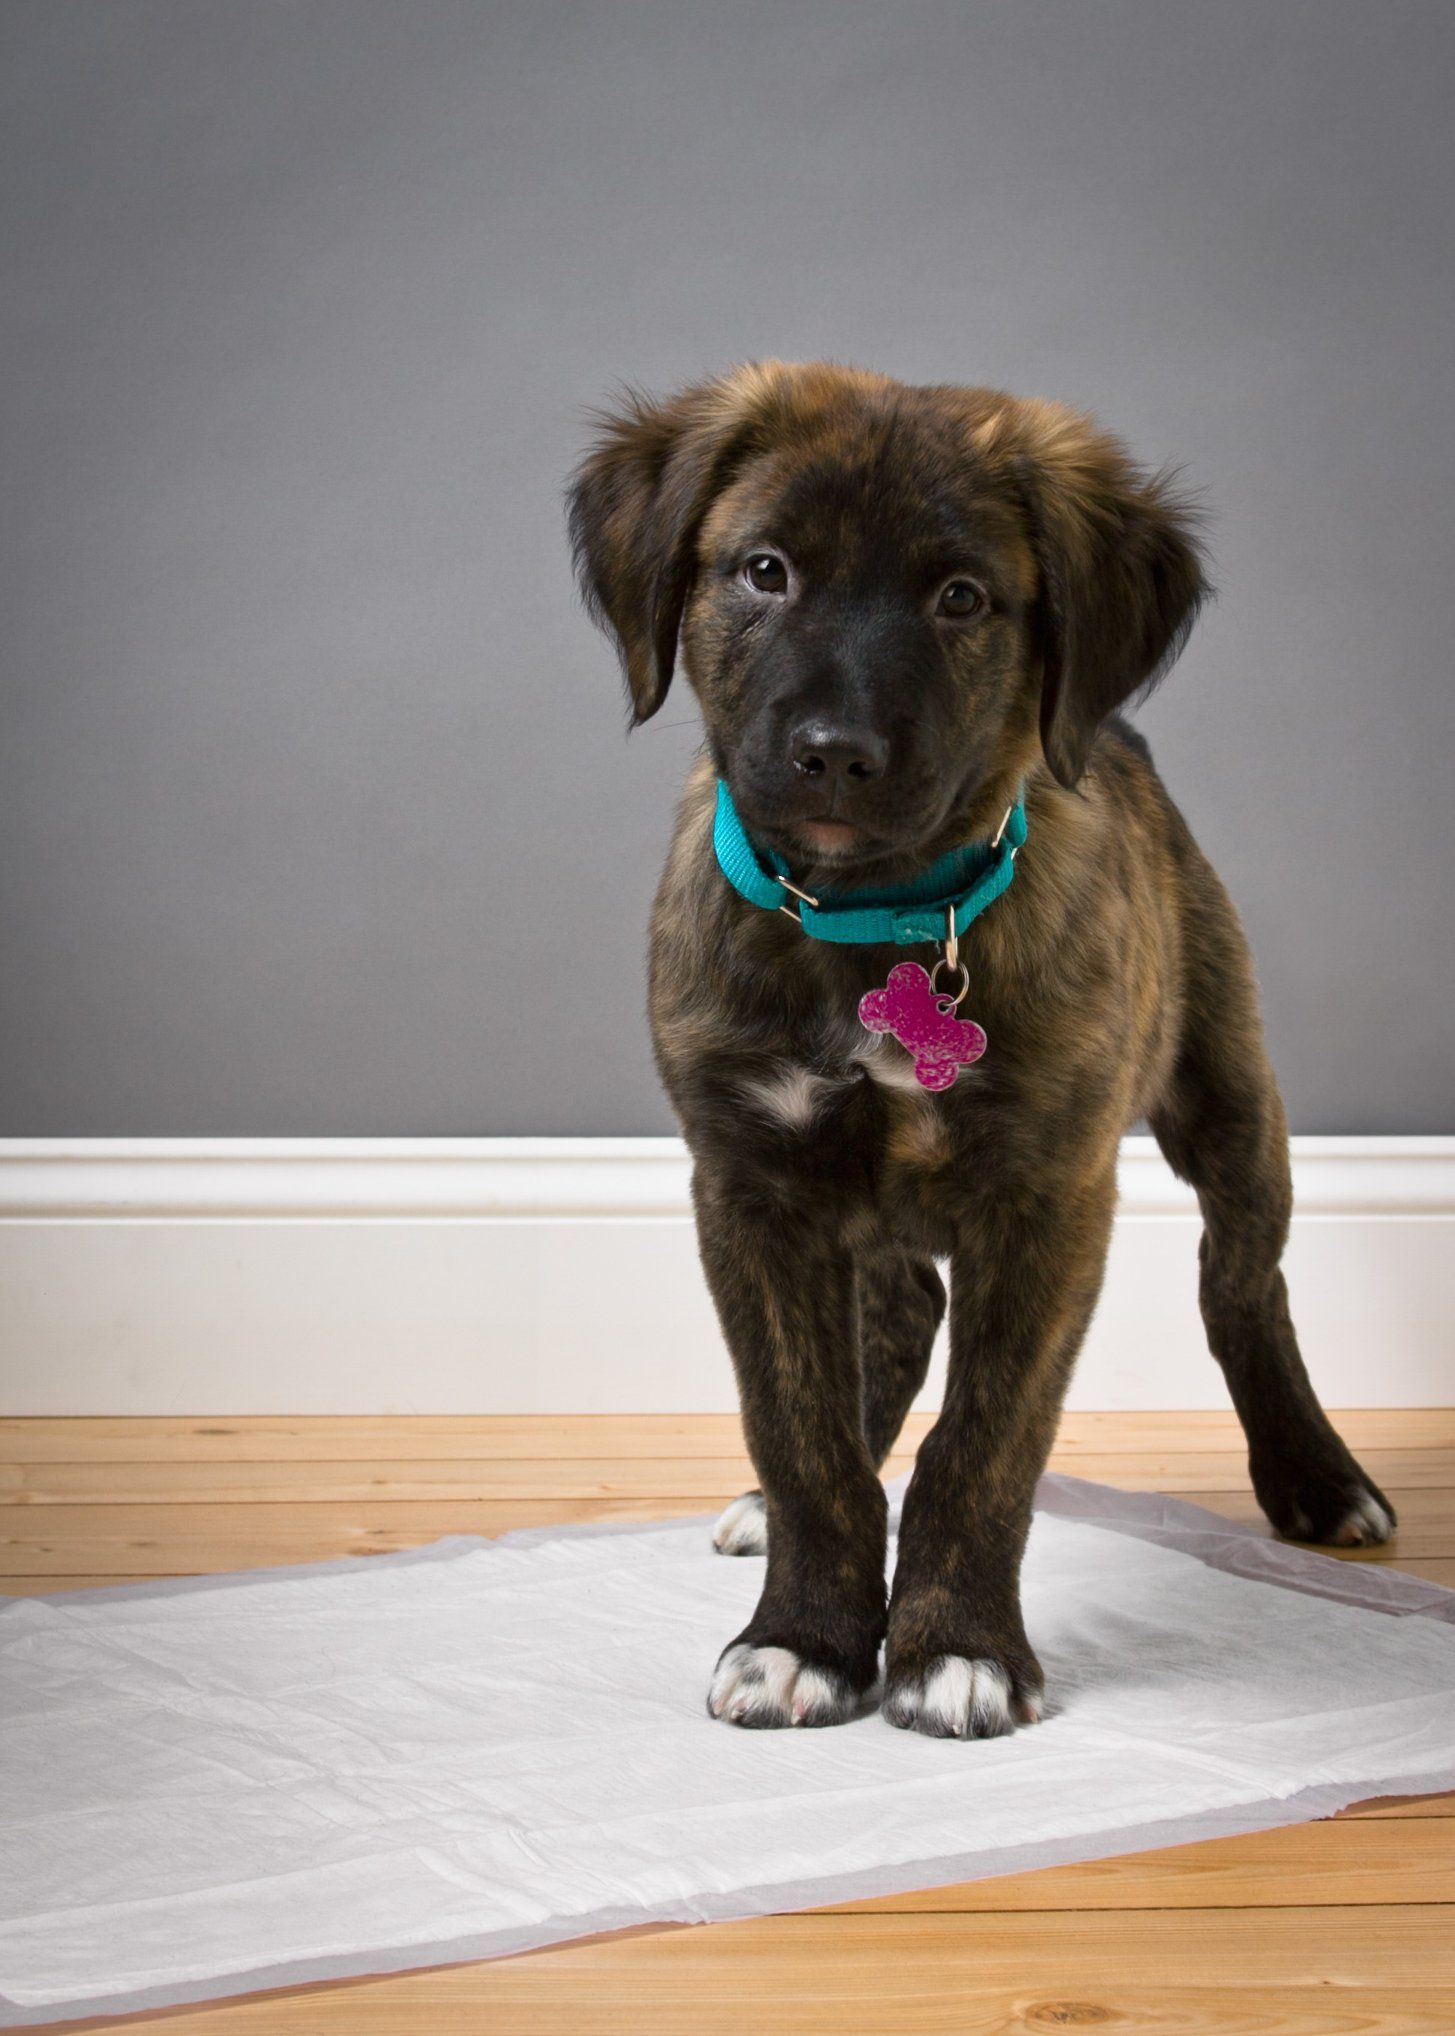 House Training A New Puppy Or Dog Only Hartz Home Protection Dog Pads Are Made With Flash Dry Technology That Instantly T Dog Pads Animal Education New Puppy